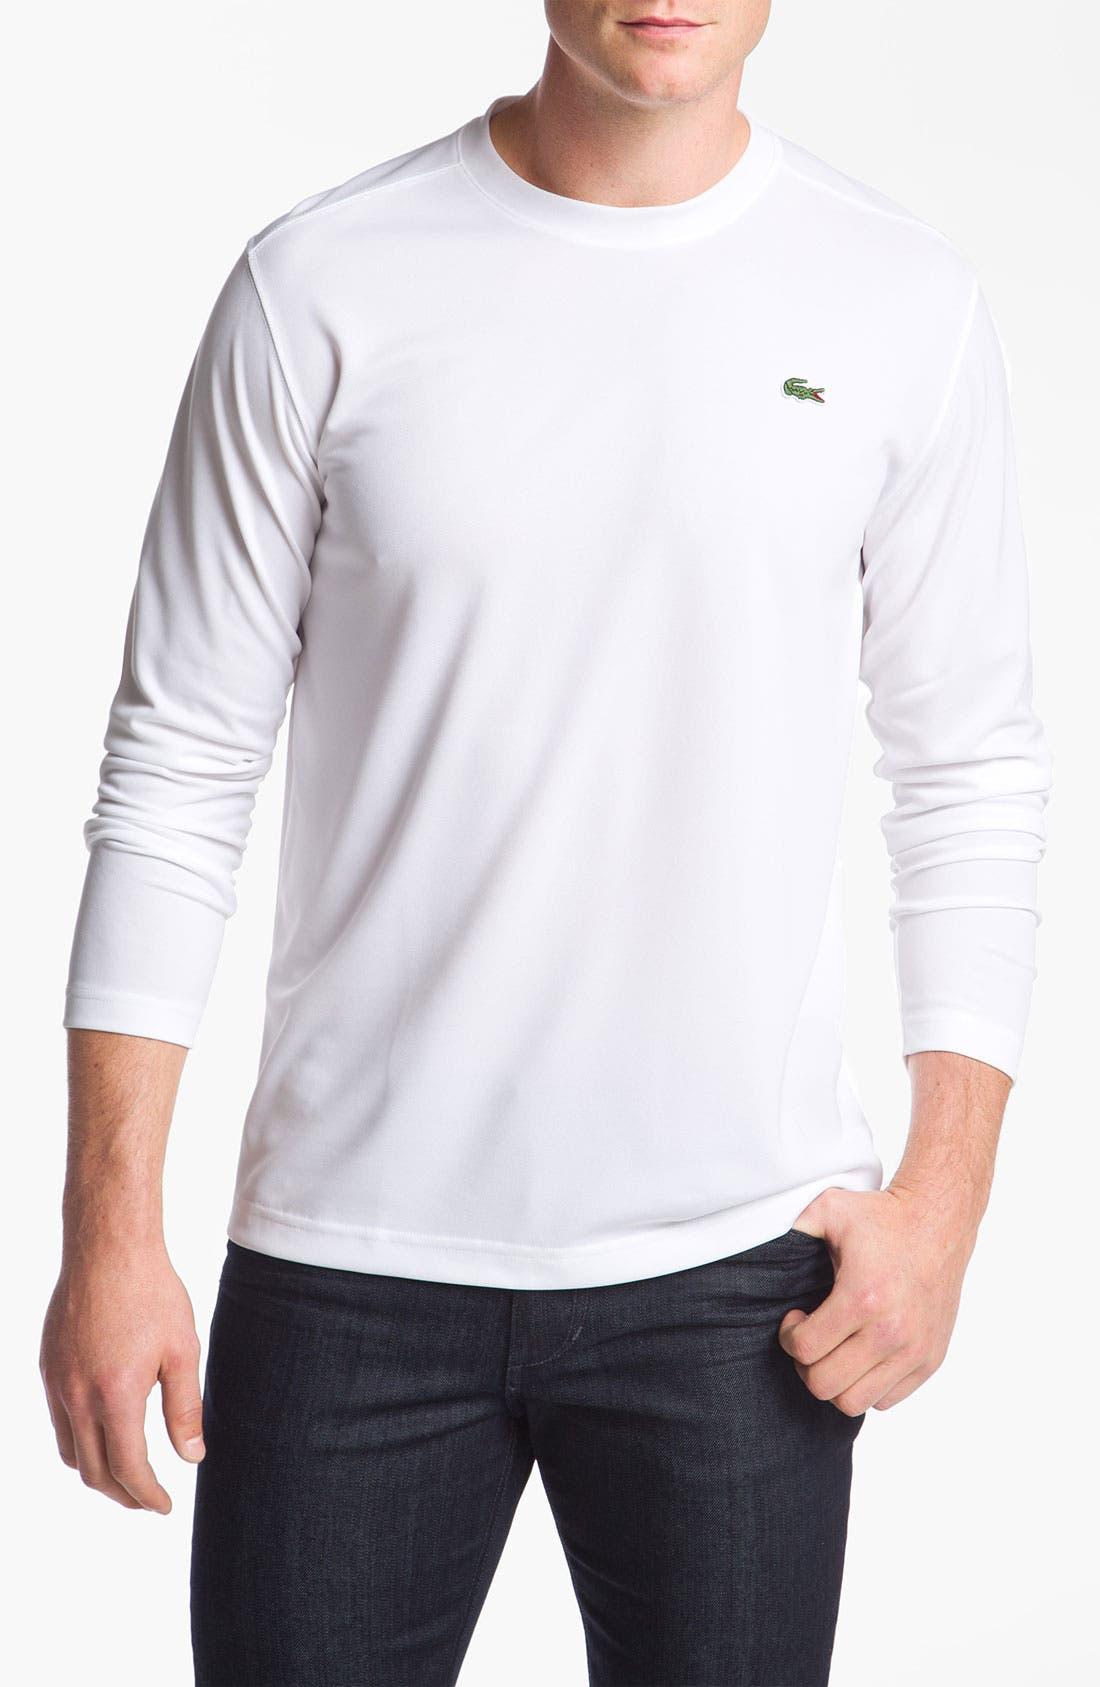 Alternate Image 1 Selected - Lacoste 'Super Dry' Crewneck T-Shirt